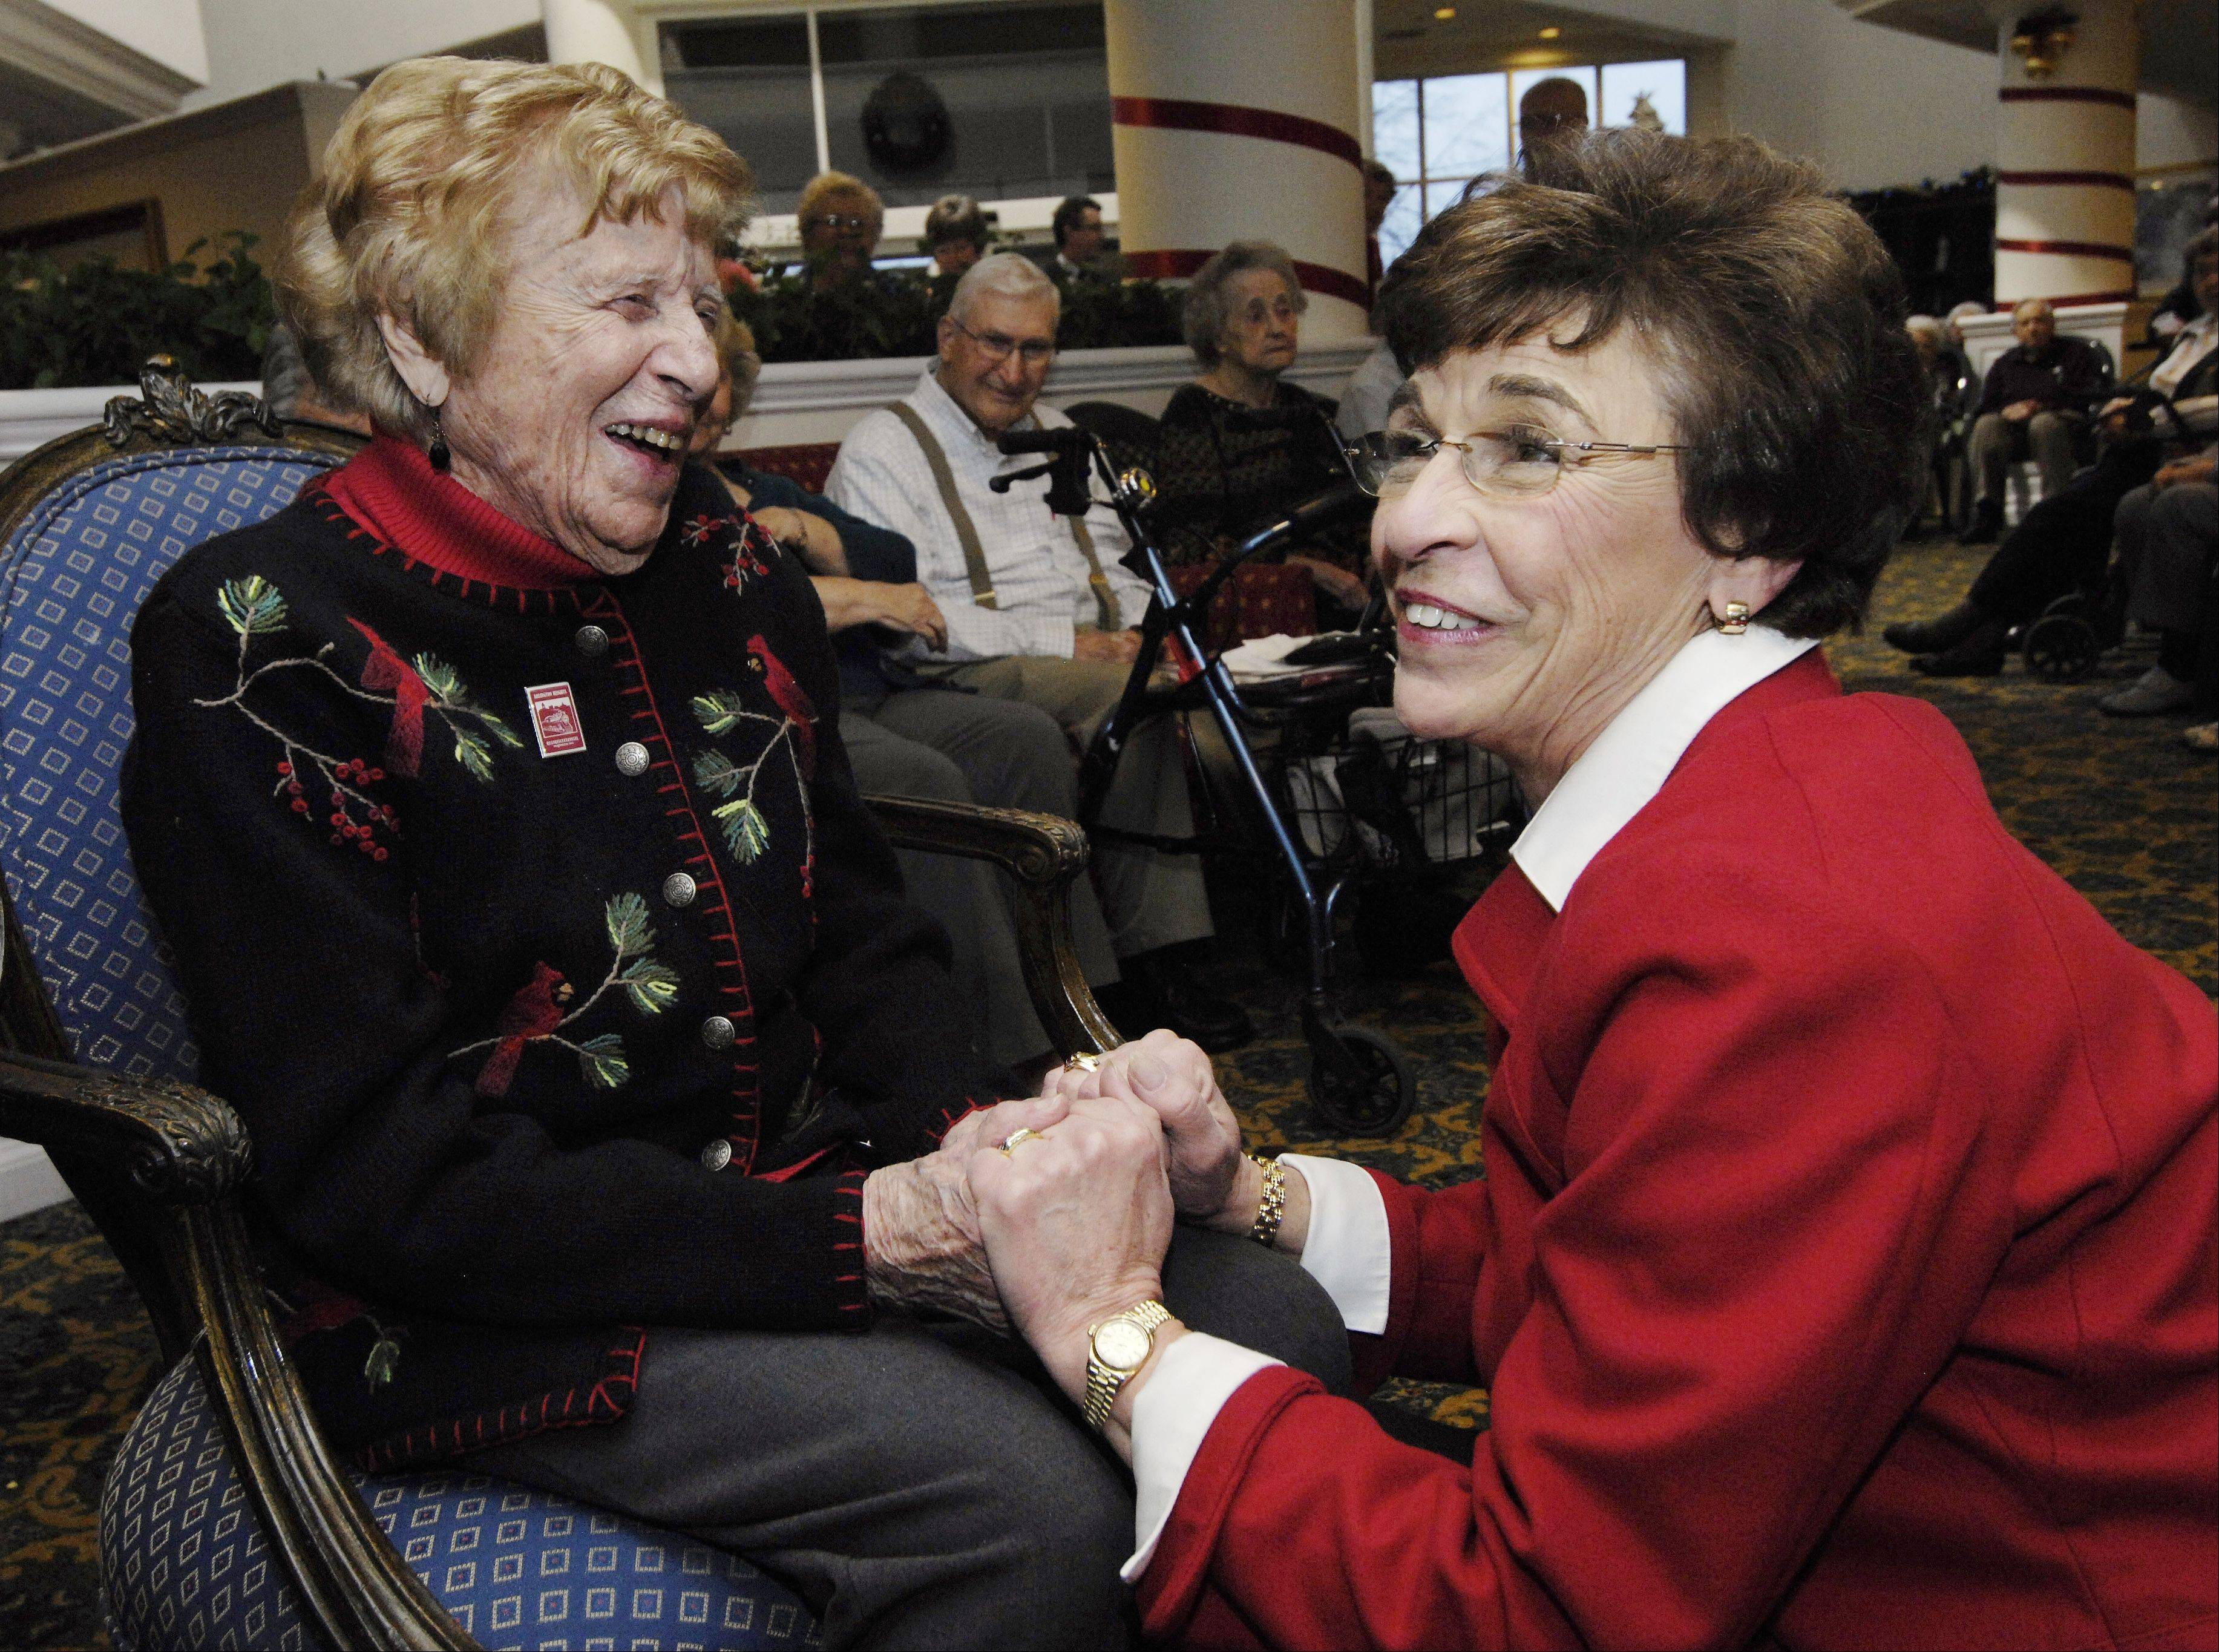 Arlene Mulder, right, visits with Lois Arbanas as she celebrates her 105th birthday at the Moorings on Dec. 1, 2012. Mulder recognized Arbanas on her 100th birthday with a plaque, and added to that collection with another framed certificate of recognition last December.